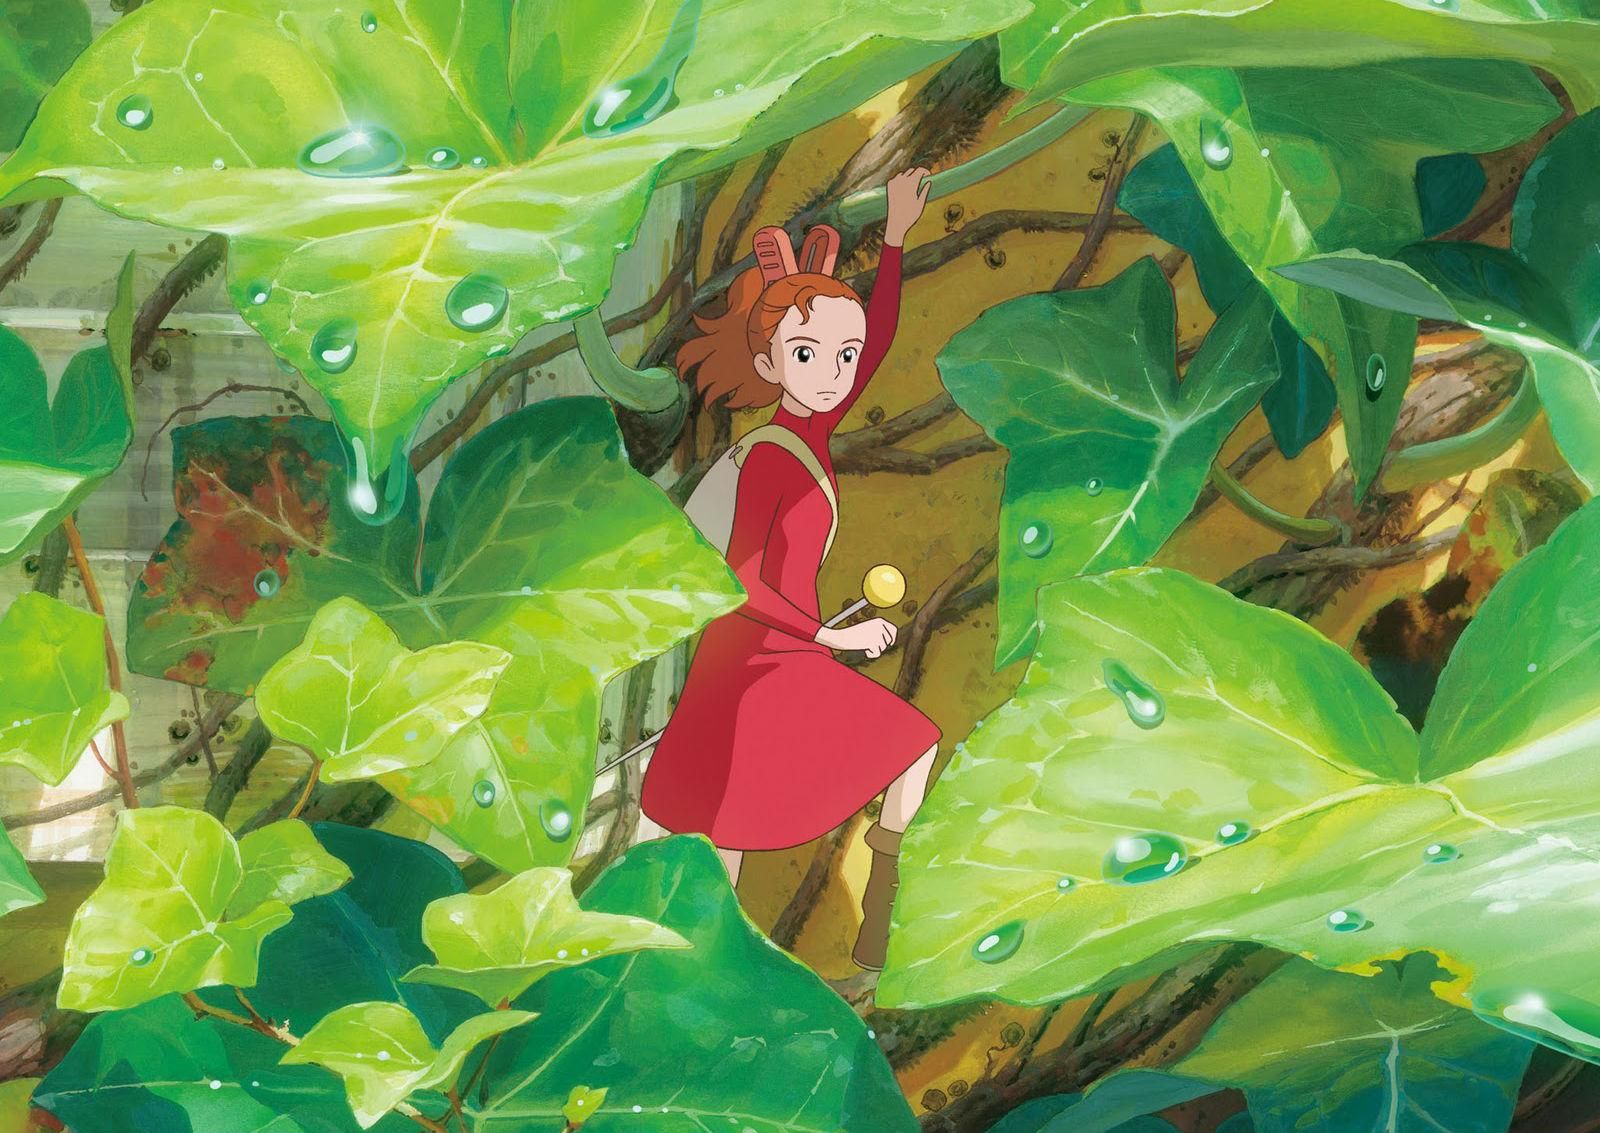 3_the_secret_world_of_arrietty.jpg